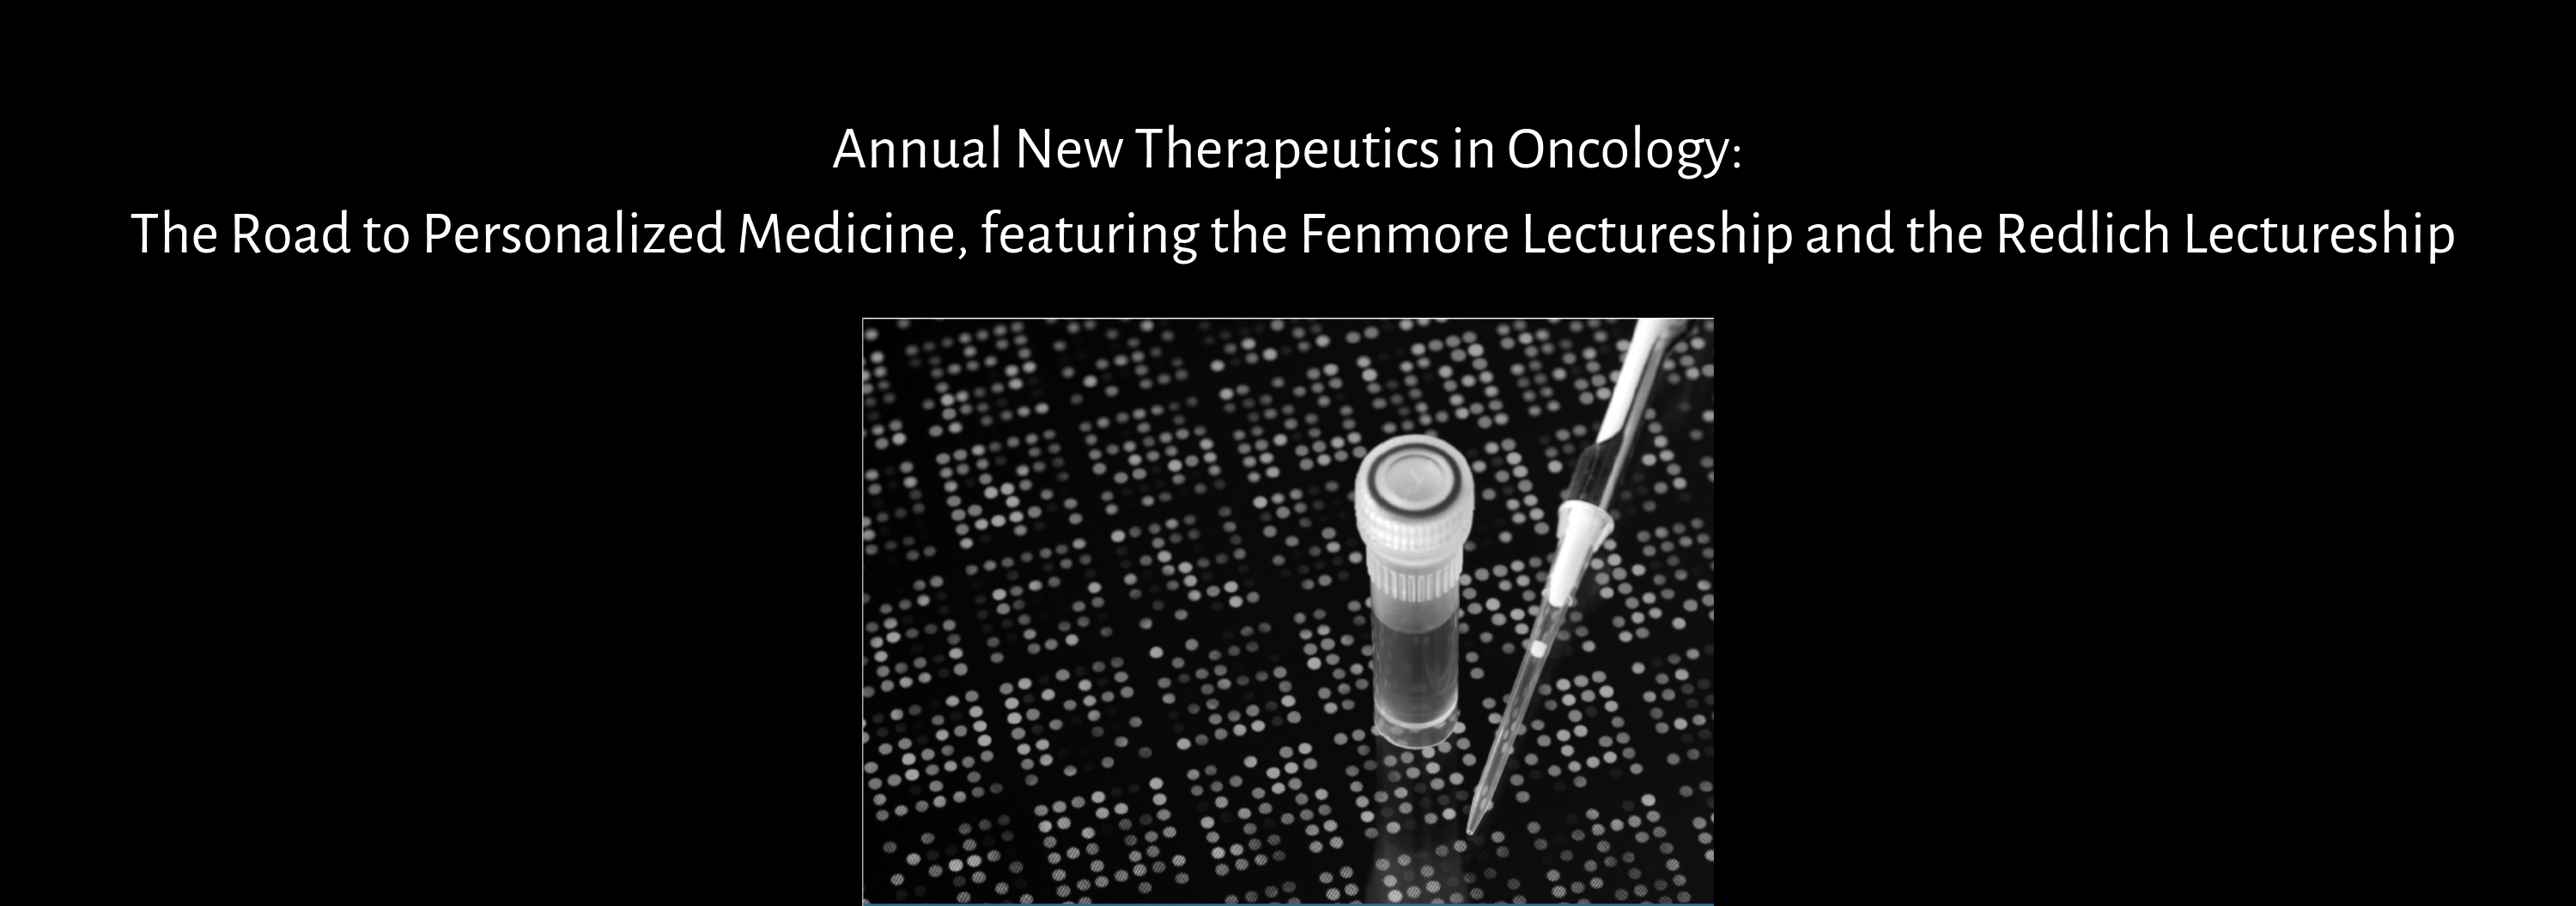 8th Annual New Therapeutics in Oncology: The Road to